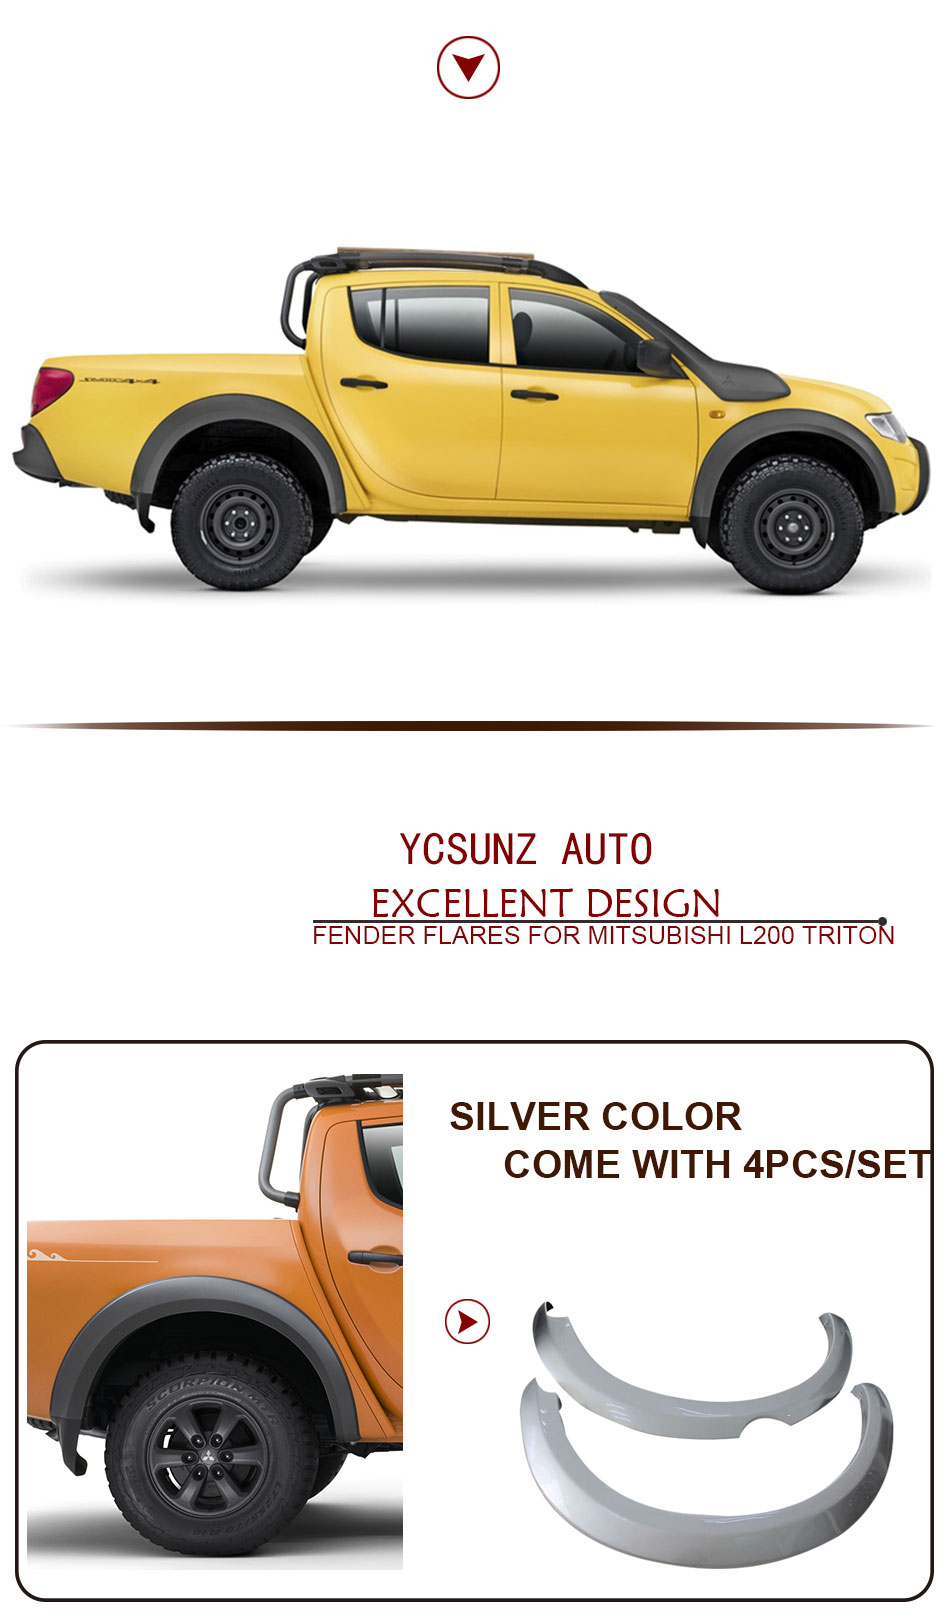 2006 2014 For Mitsubishi Triton Fender Flare Abs Flares 2001 Toyota Tacoma All Have 30 Discount